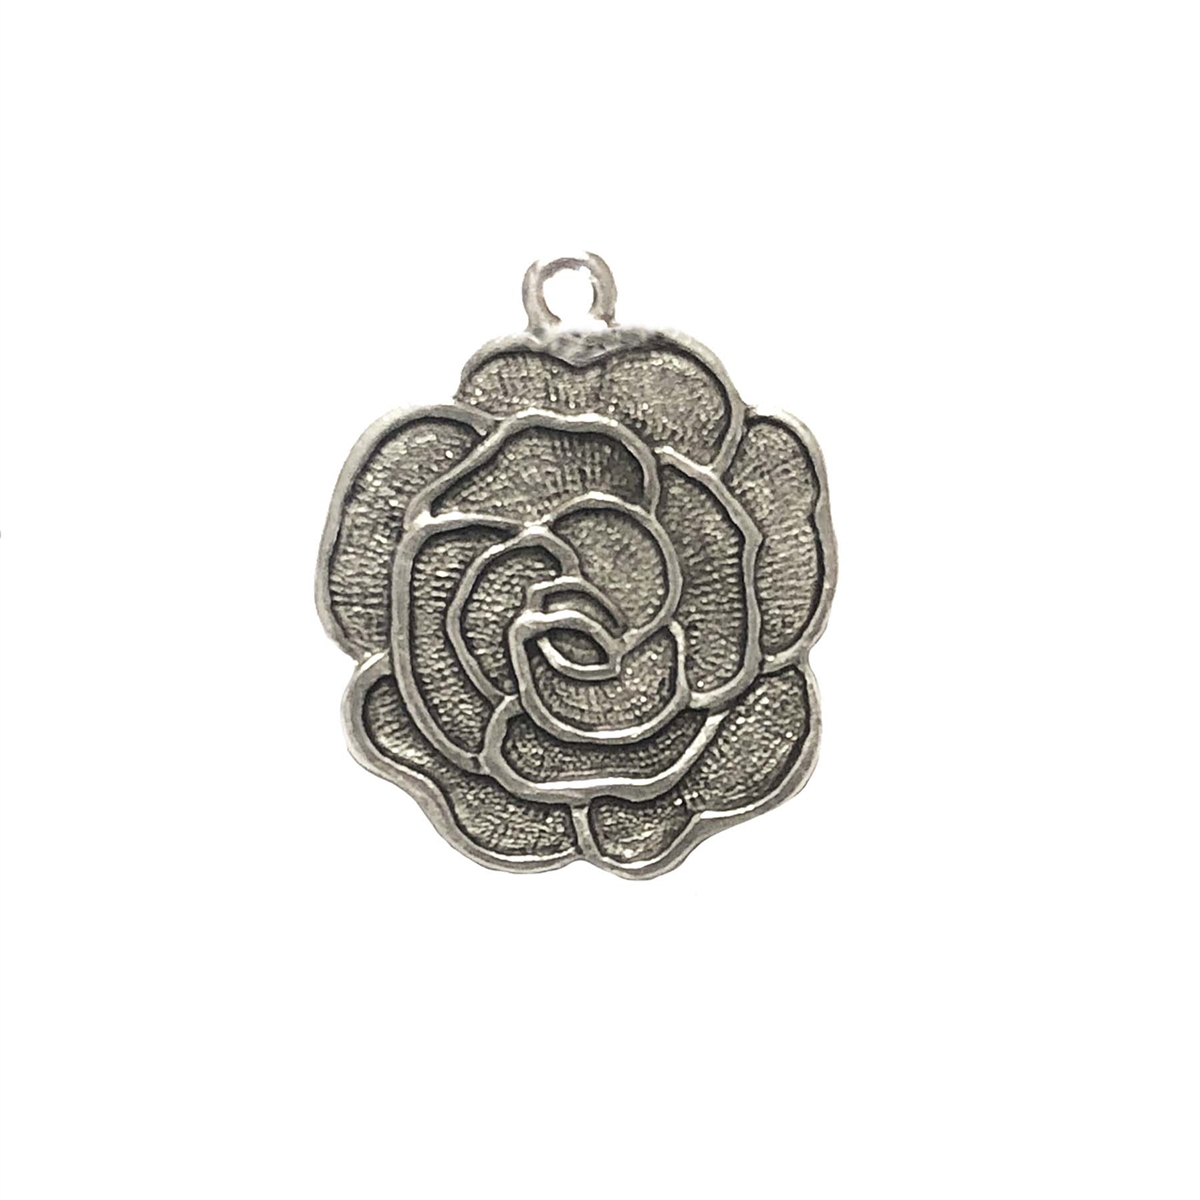 Old silver nickel freeroserose charms lead free pewter castings our aloadofball Images